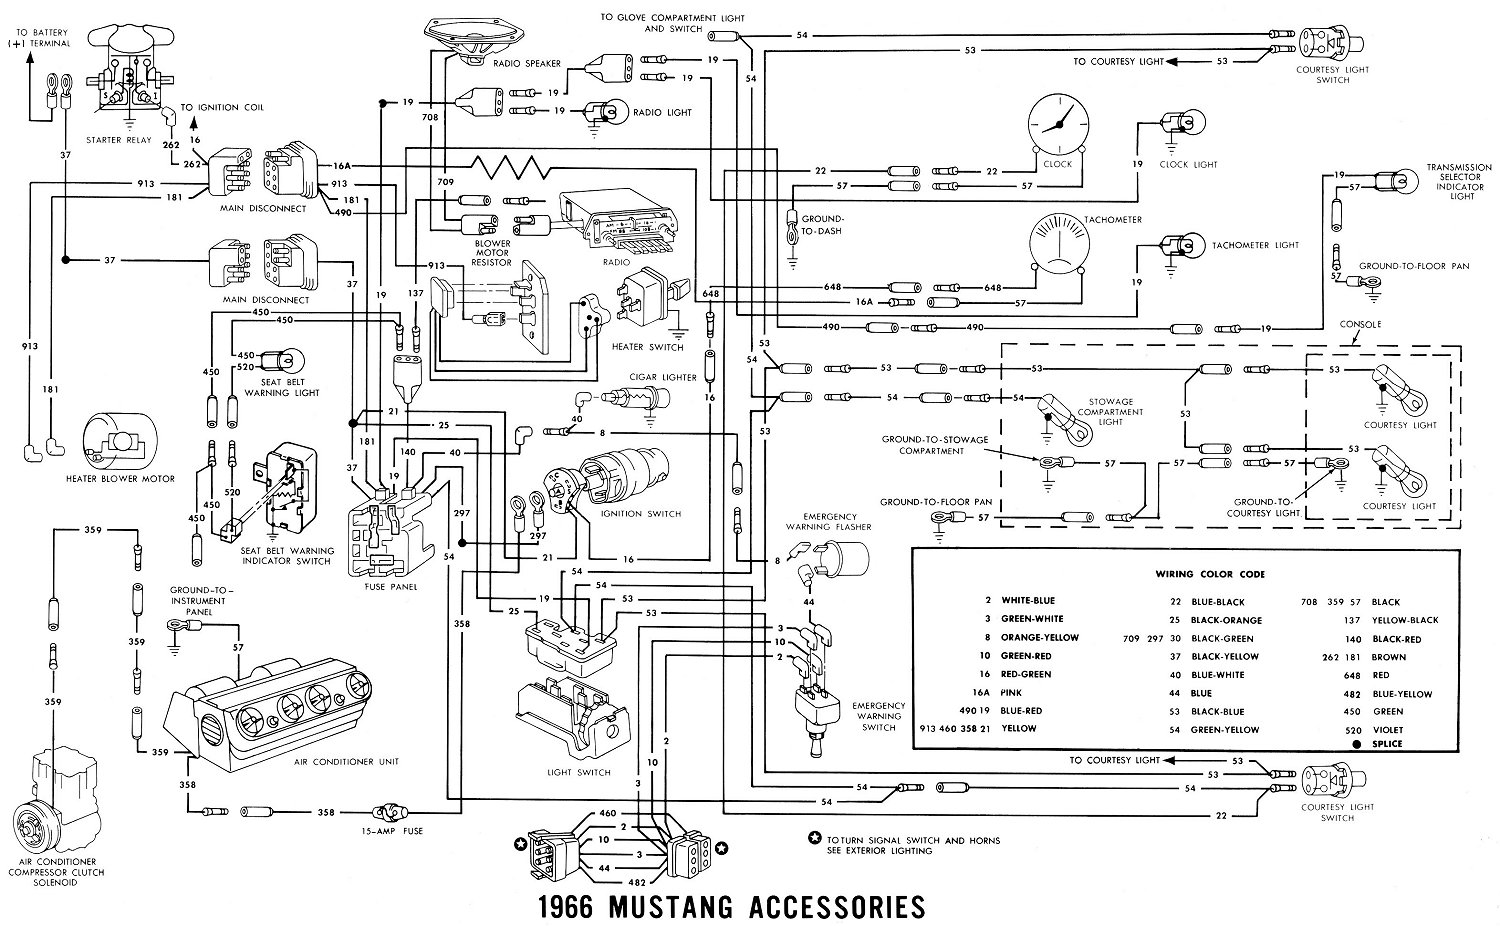 66acces1 1966 mustang wiring diagrams average joe restoration mustang wiring harness diagram at bayanpartner.co